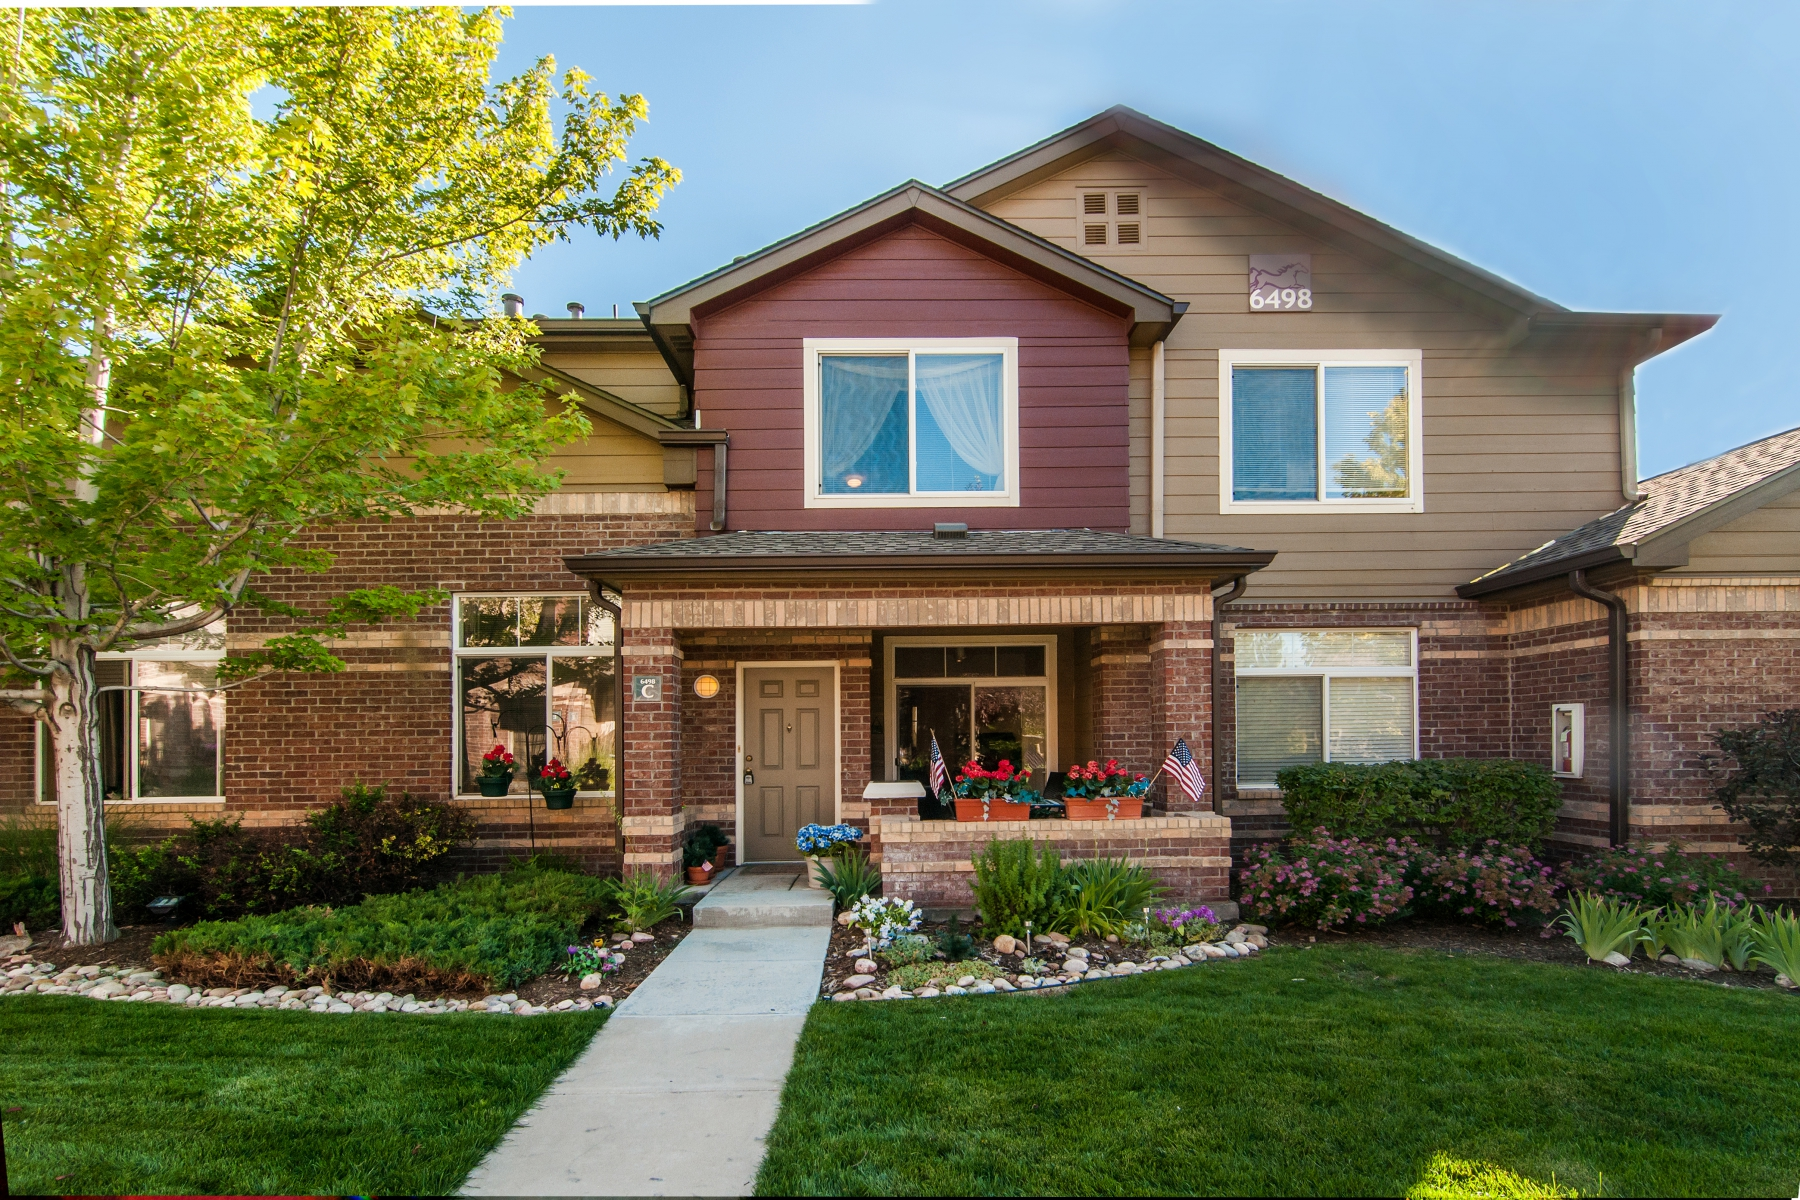 Maison unifamiliale pour l Vente à Light bright 3-level town home in Palomino Park 6498 Silver Mesa Dr #C Highlands Ranch, Colorado 80130 États-Unis